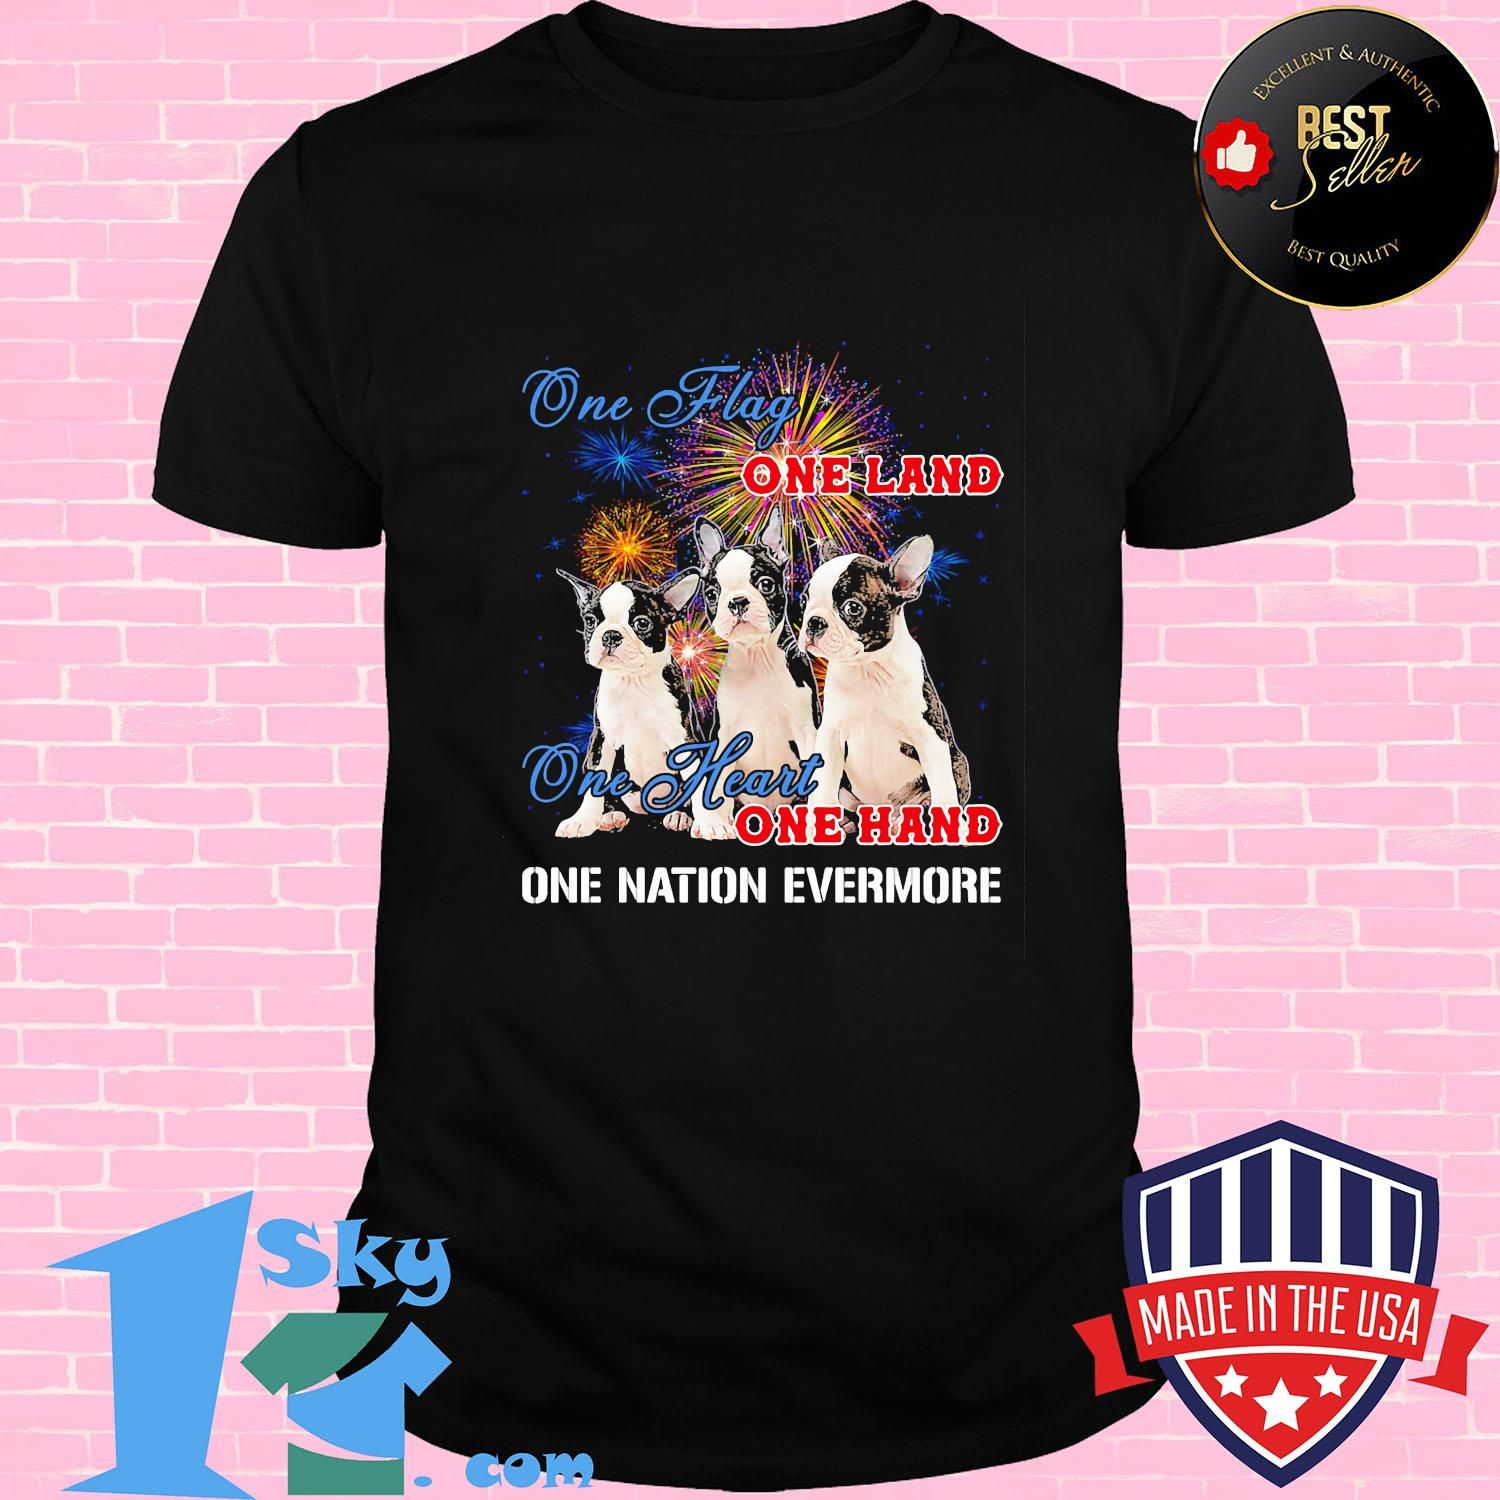 One flag one land one heart one hand one nation evermore shirt